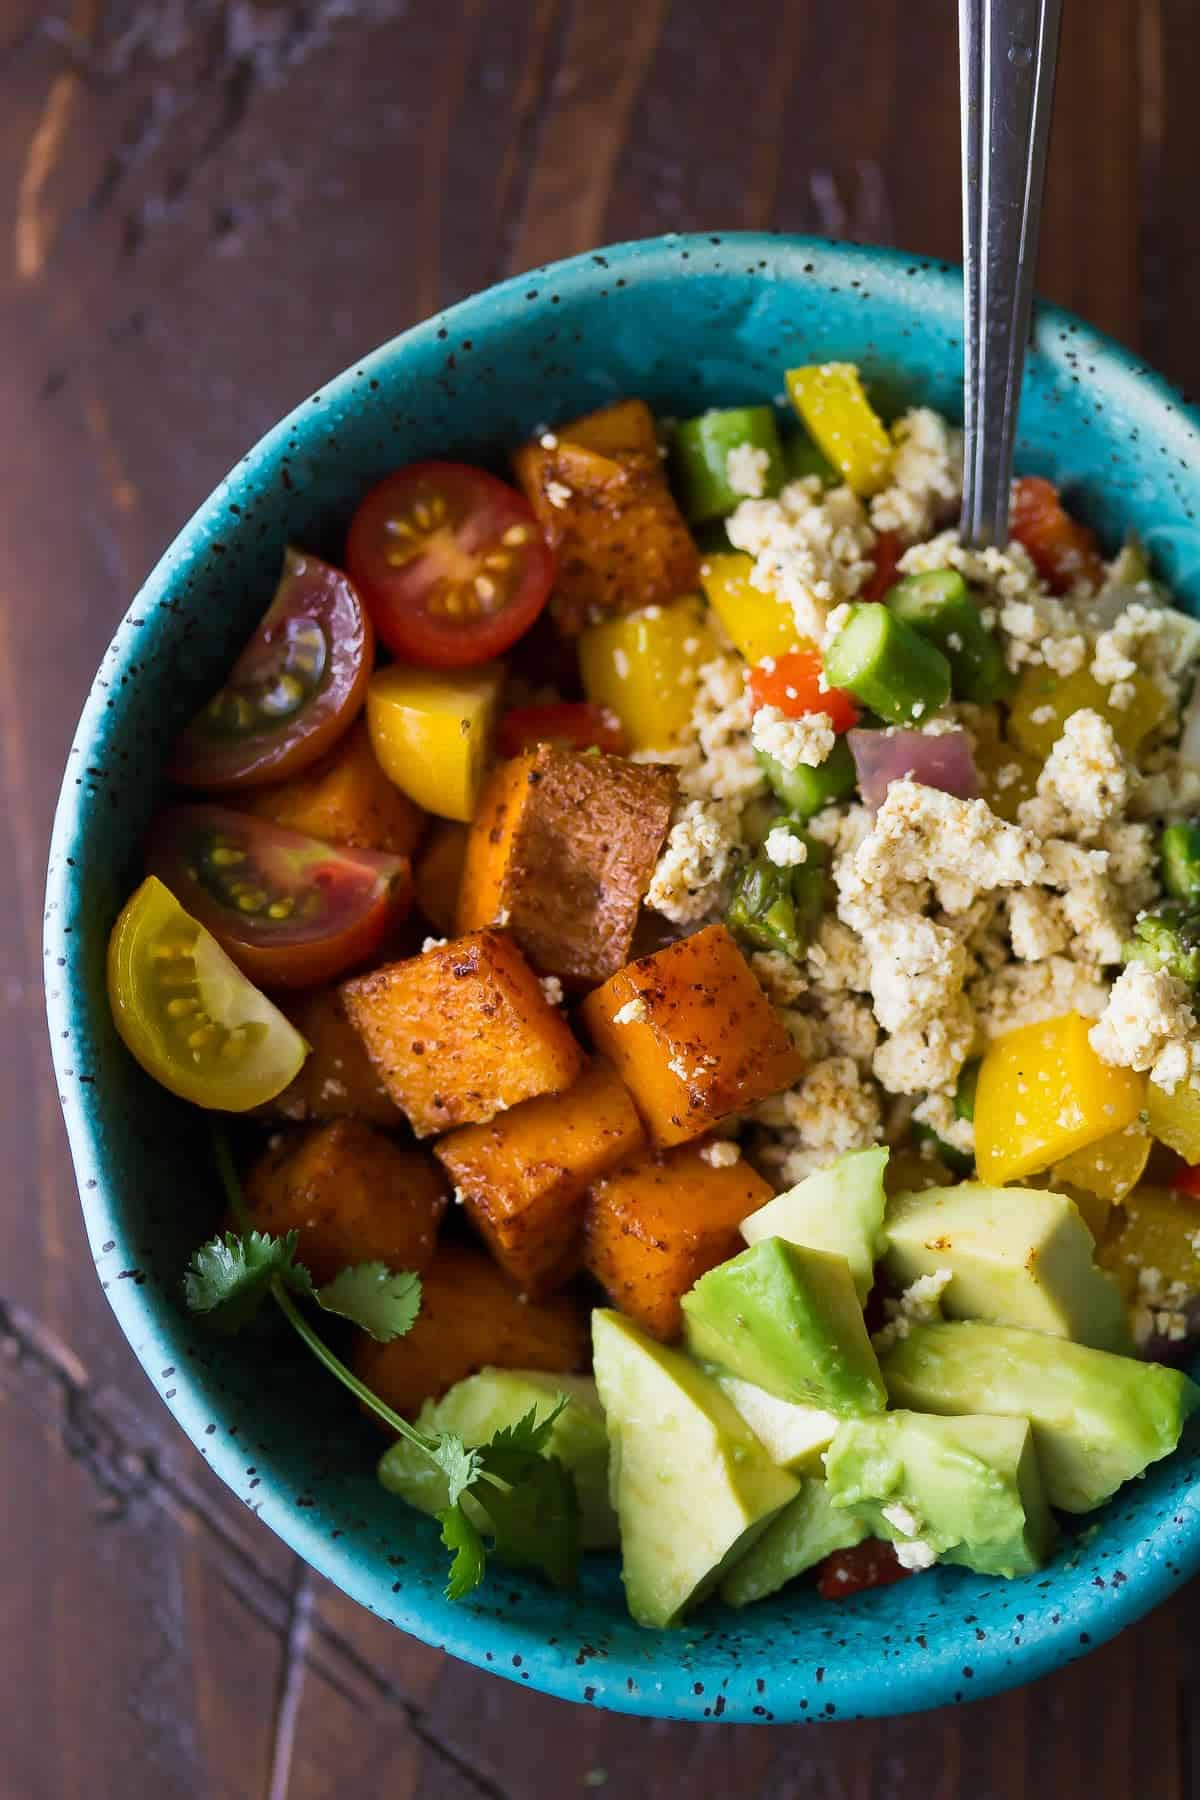 Tofu Scramble & Breakfast Sweet Potatoes with avocado in a blue bowl